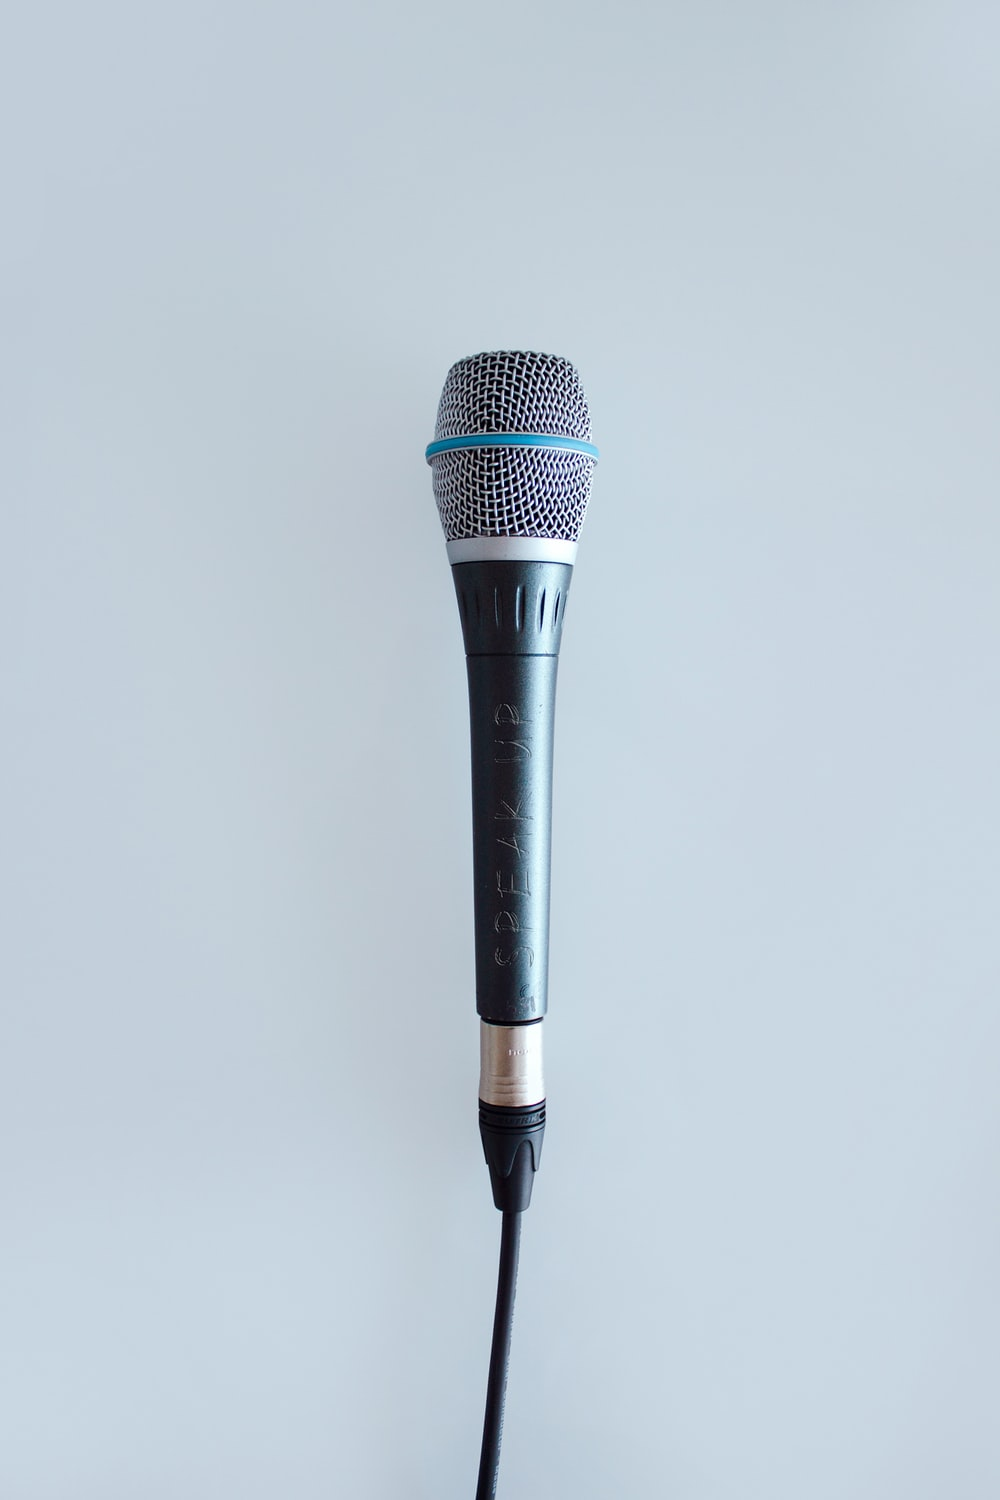 microphone pictures download. Hops clipart stand